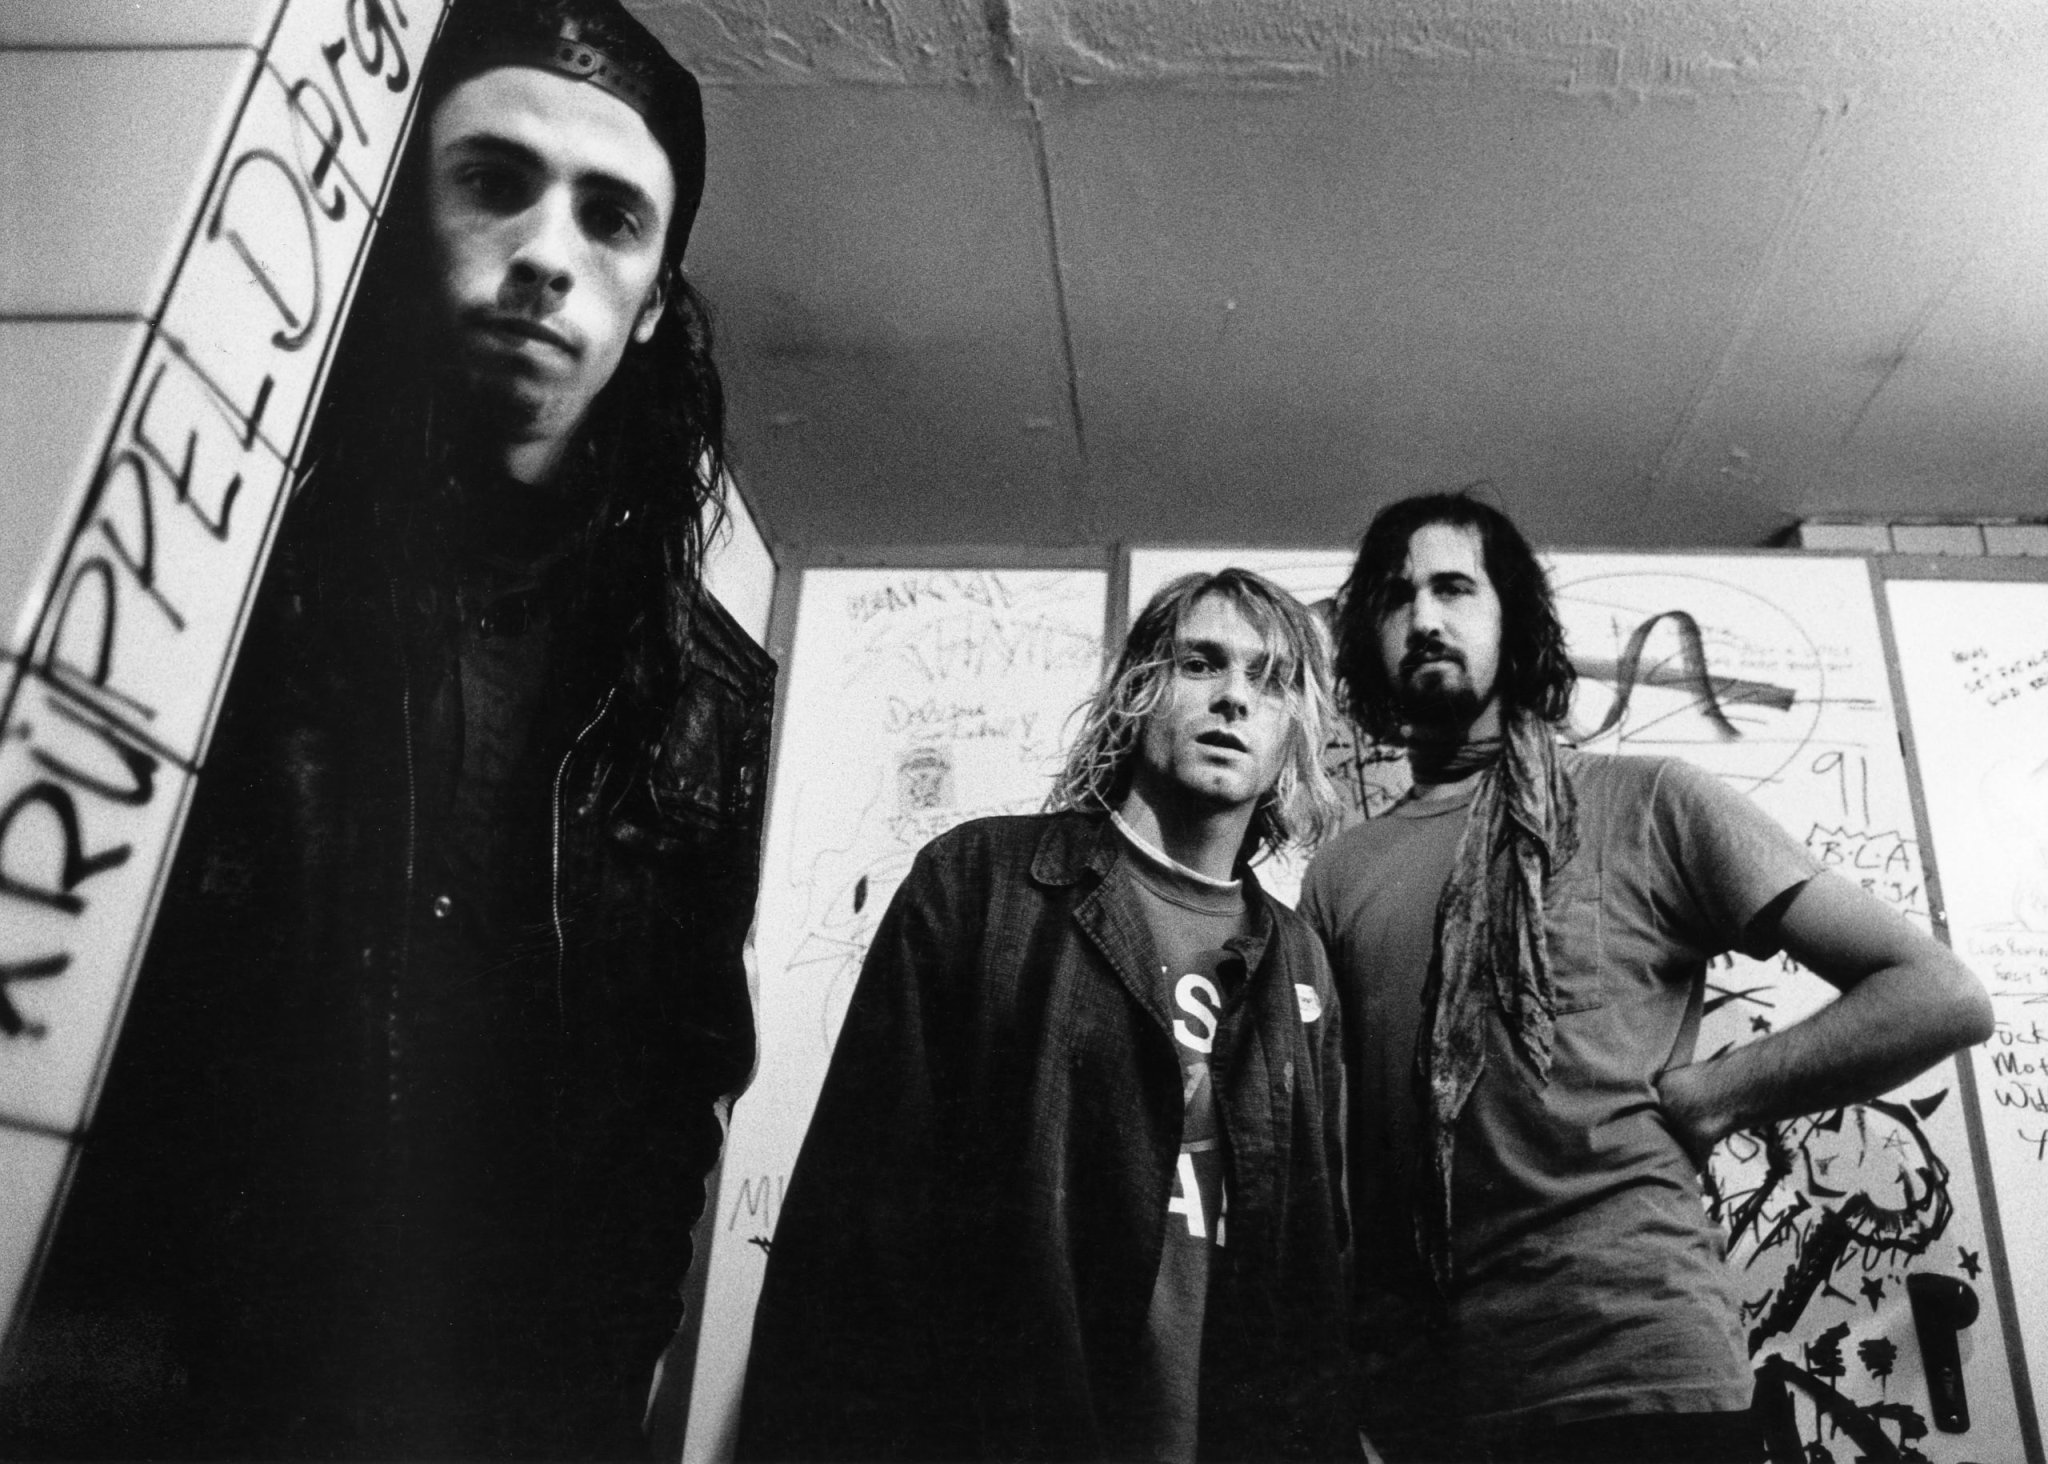 Dave Grohl reveals Nirvana's expectations for 'Nevermind'